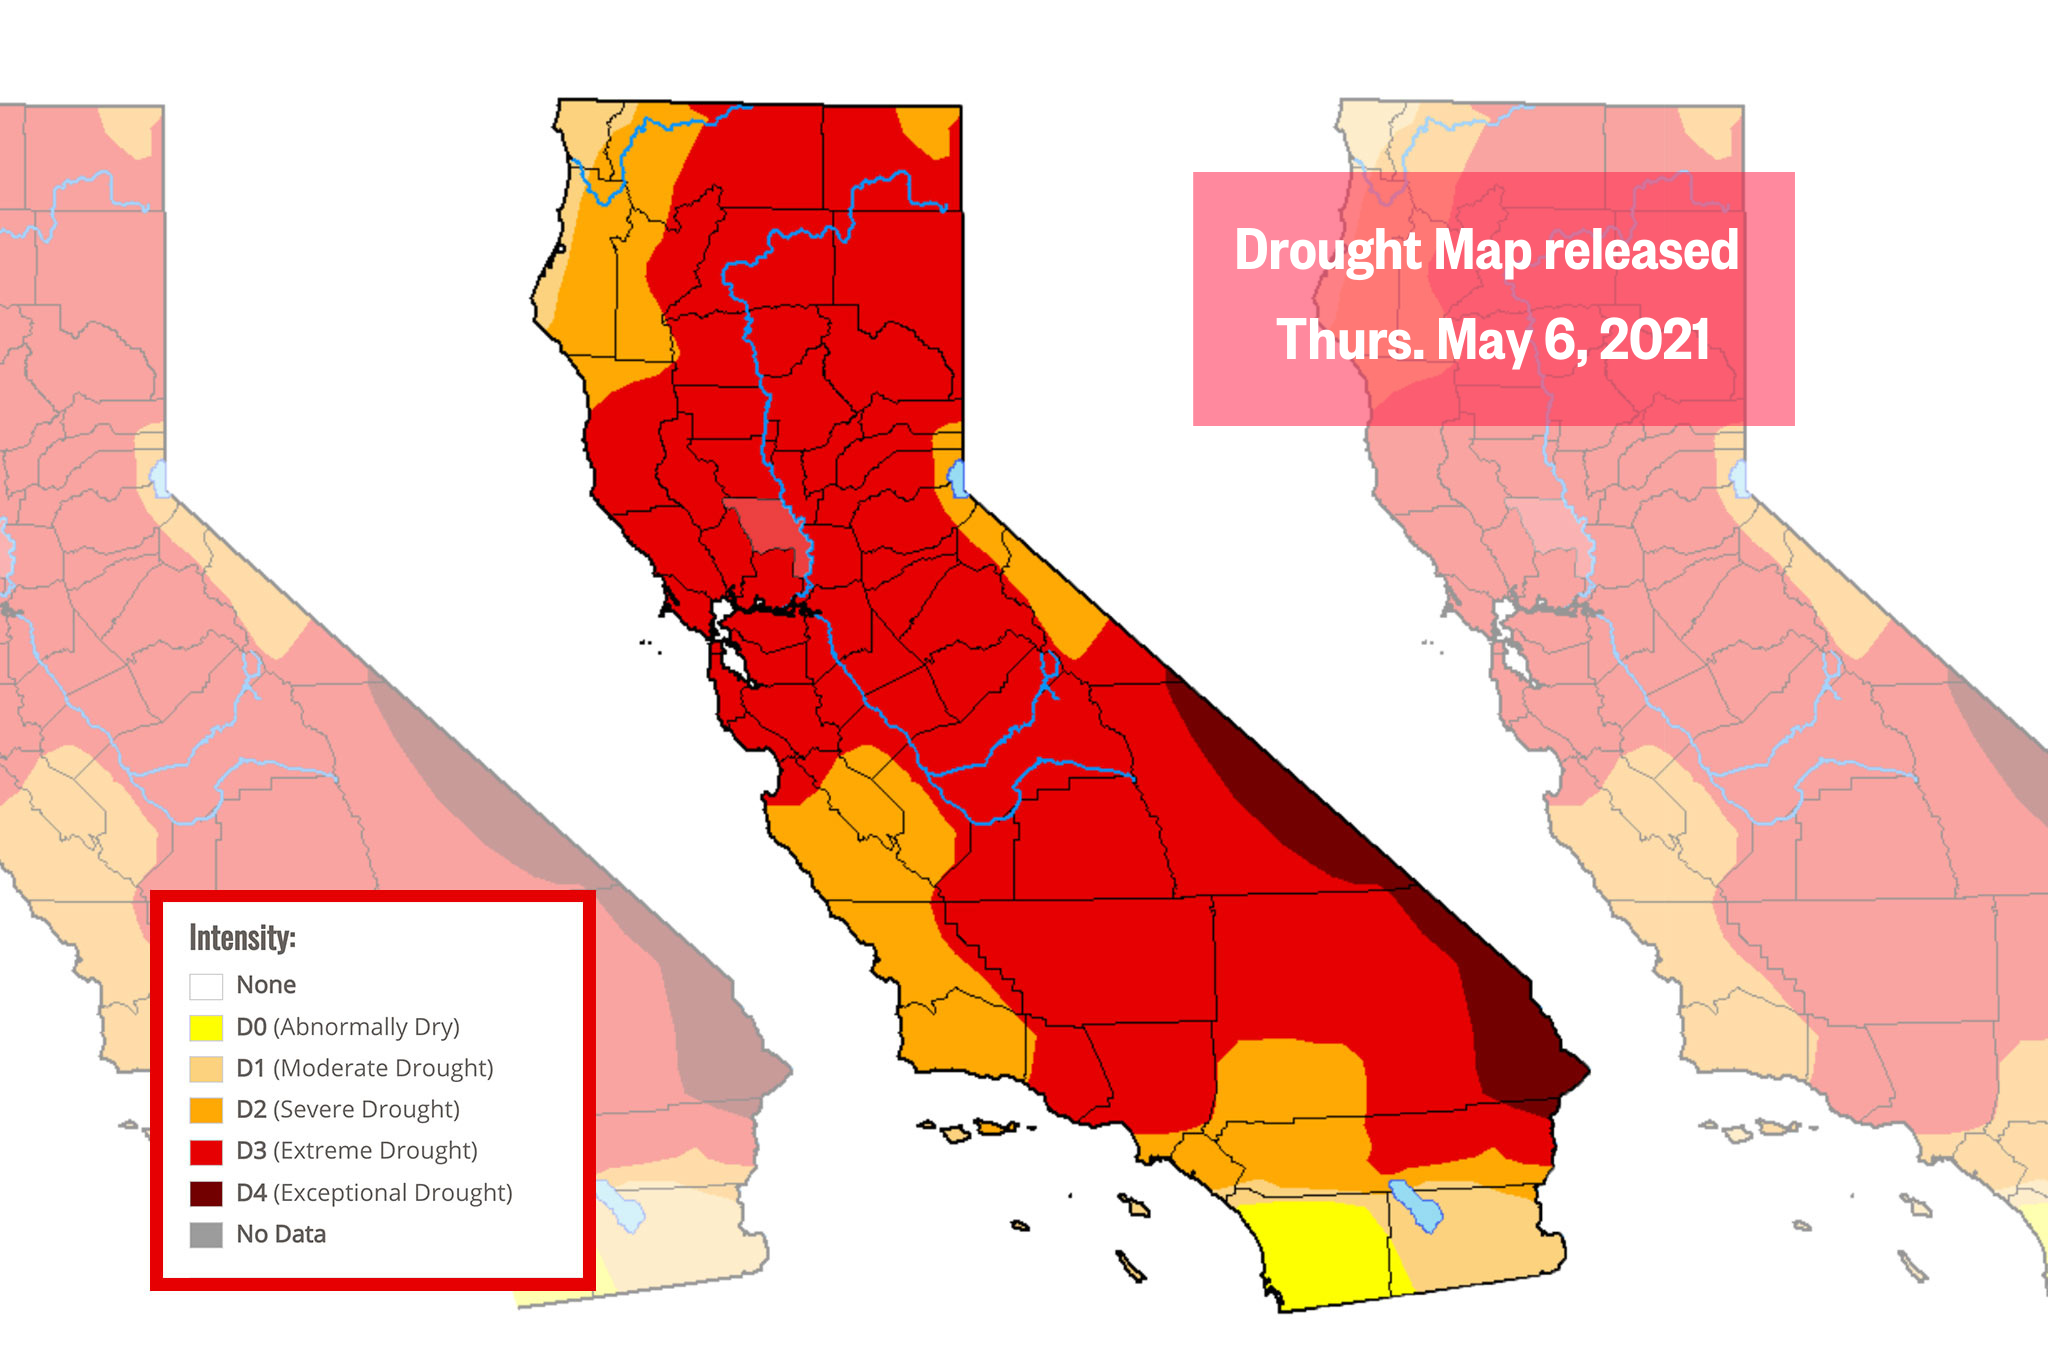 New federal map puts entire SF Bay Area in 'extreme drought'